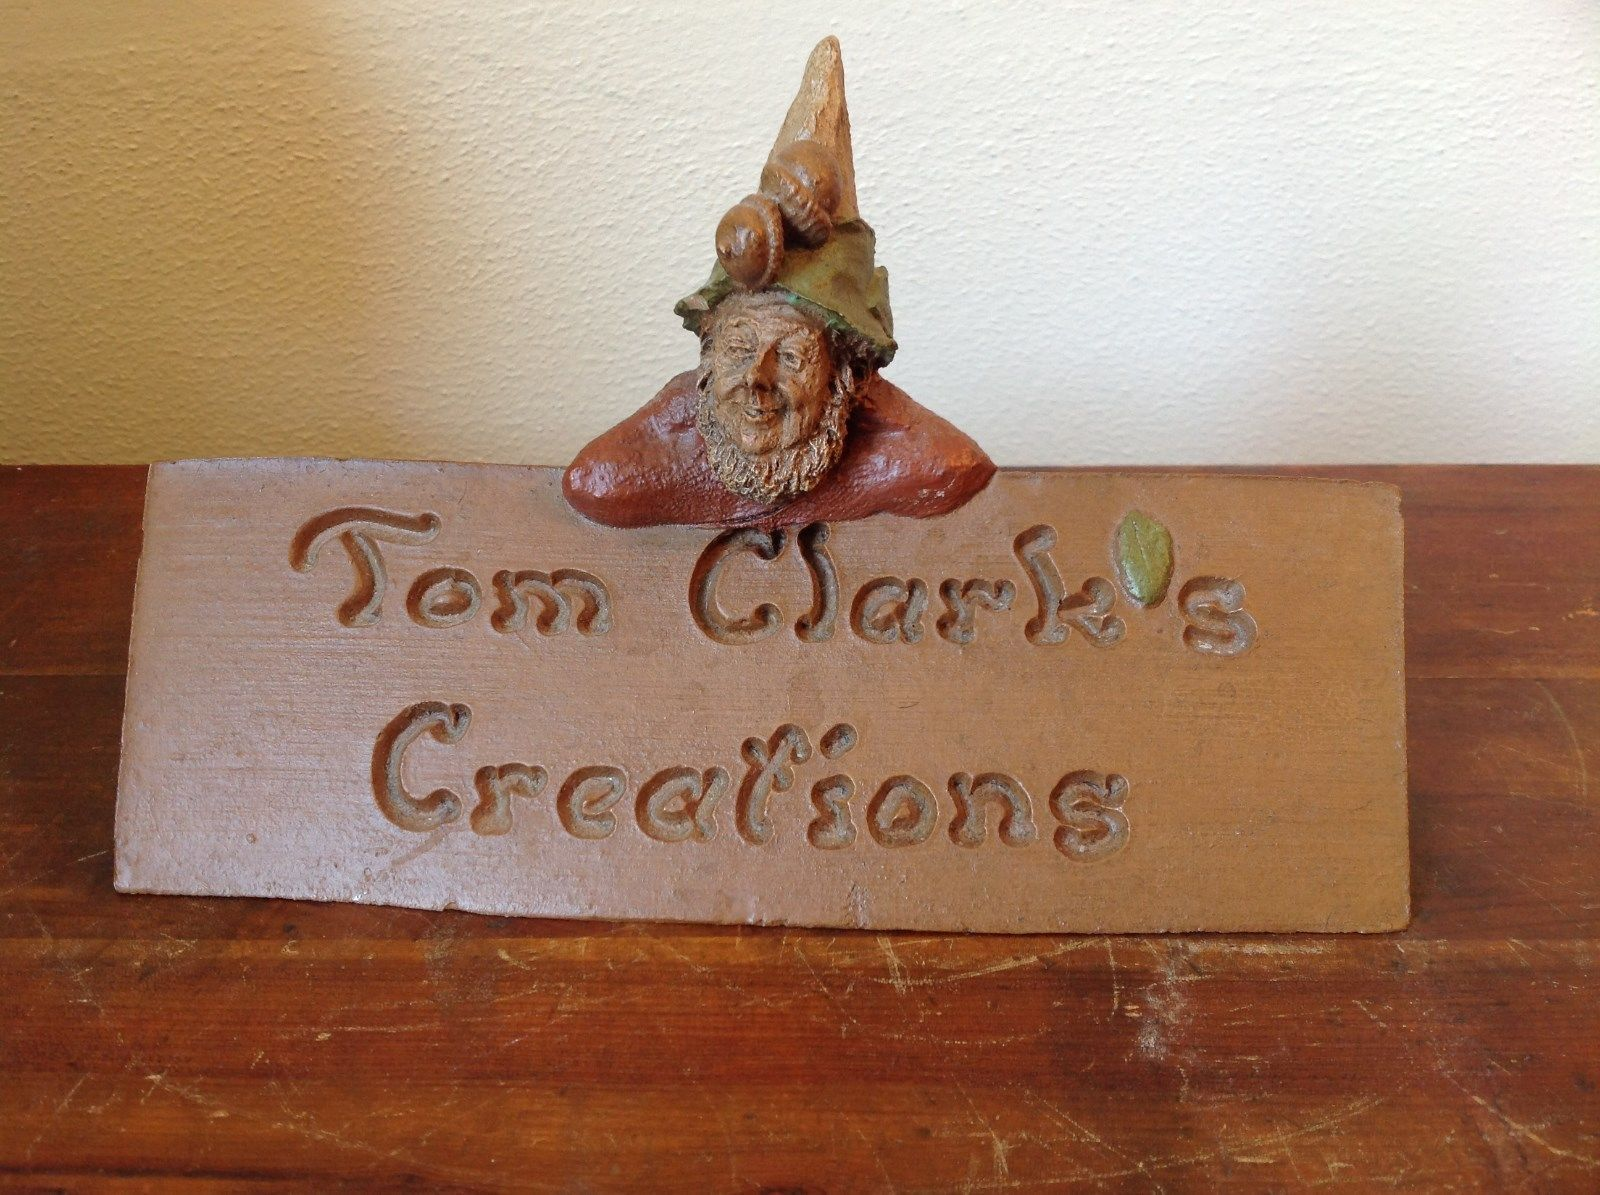 Primary image for Adorable Figurine of Rustic Nature Loving Gnome Tom Clarks Creations